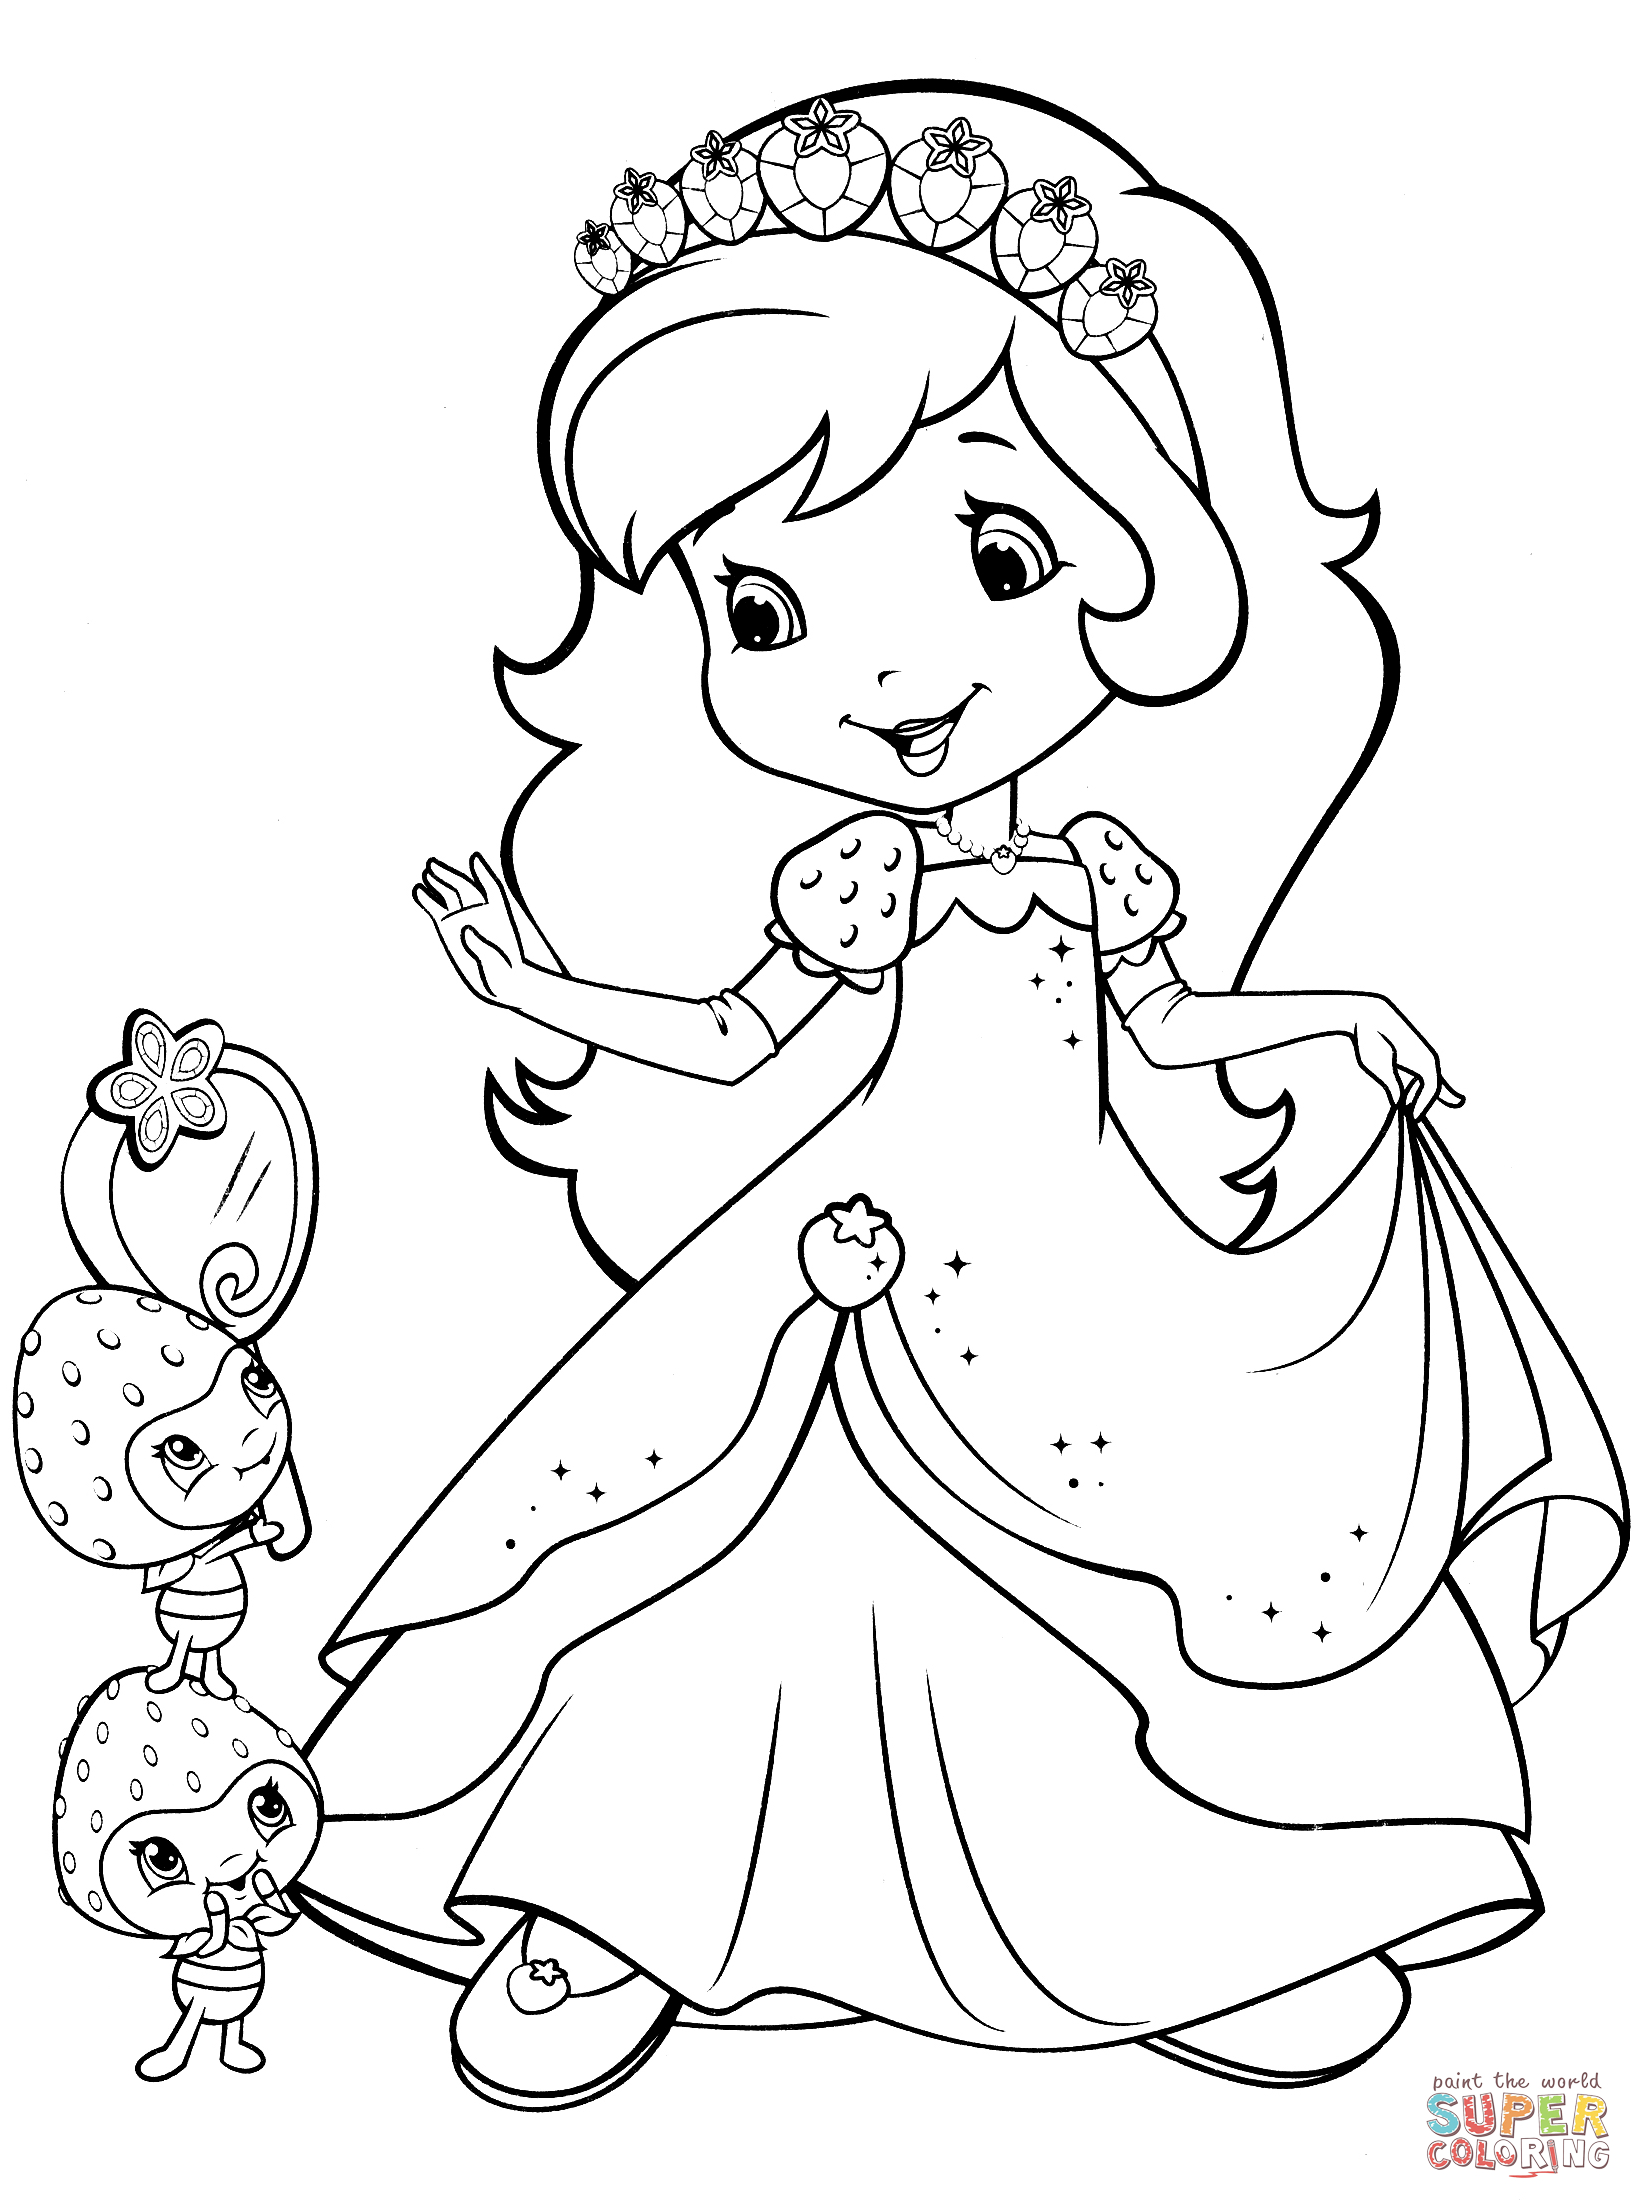 Strawberry Shortcake Coloring Pages Strawberry Shortcake Coloring Pages Free Coloring Pages